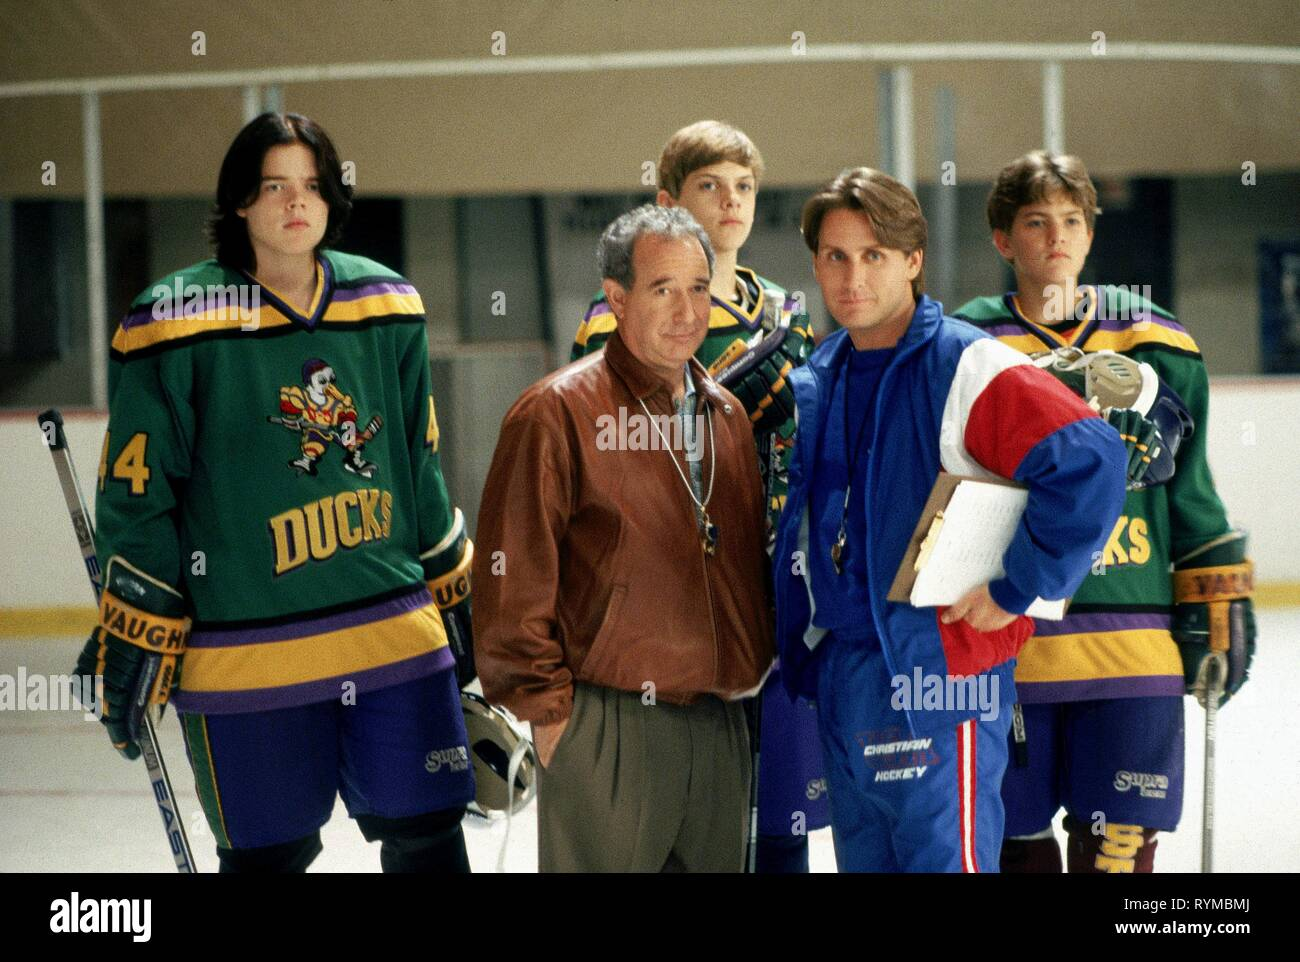 TUCKER,ESTEVEZ,JACKSON, D2: THE MIGHTY DUCKS, 1994 - Stock Image